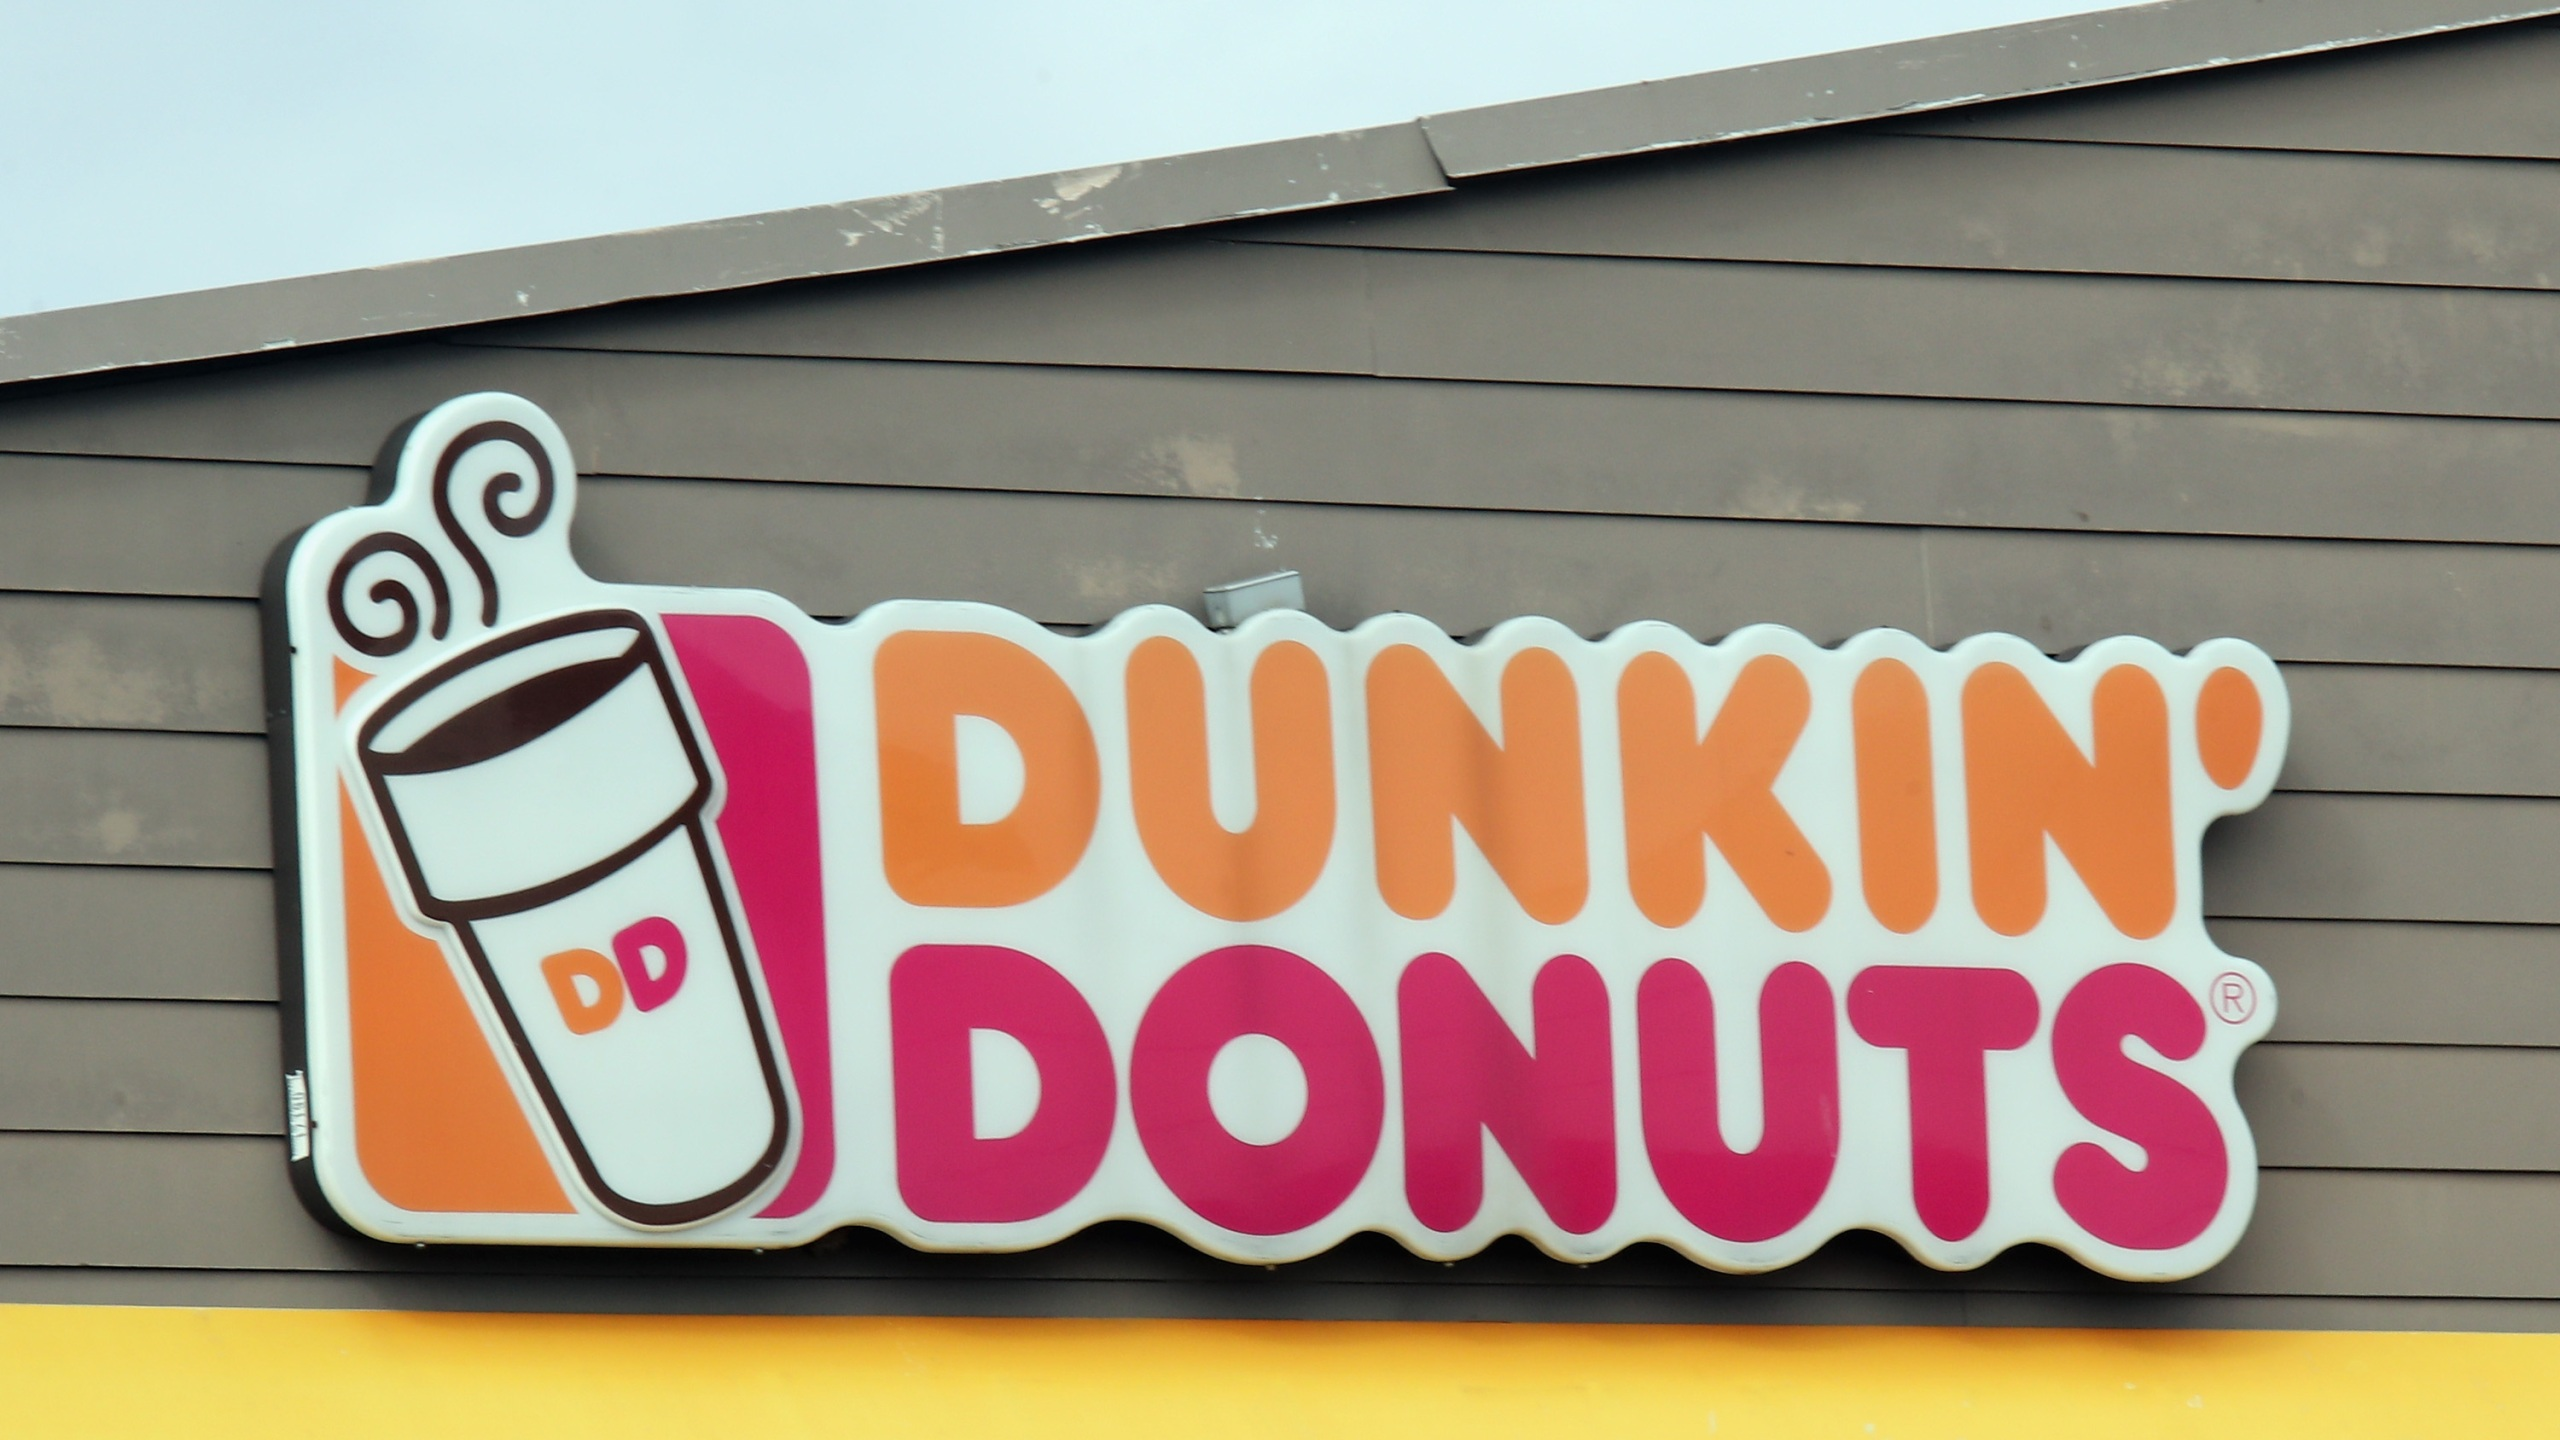 This file photo shows a Dunkin' Donuts store sign. (Bruce Bennett/Getty Images)